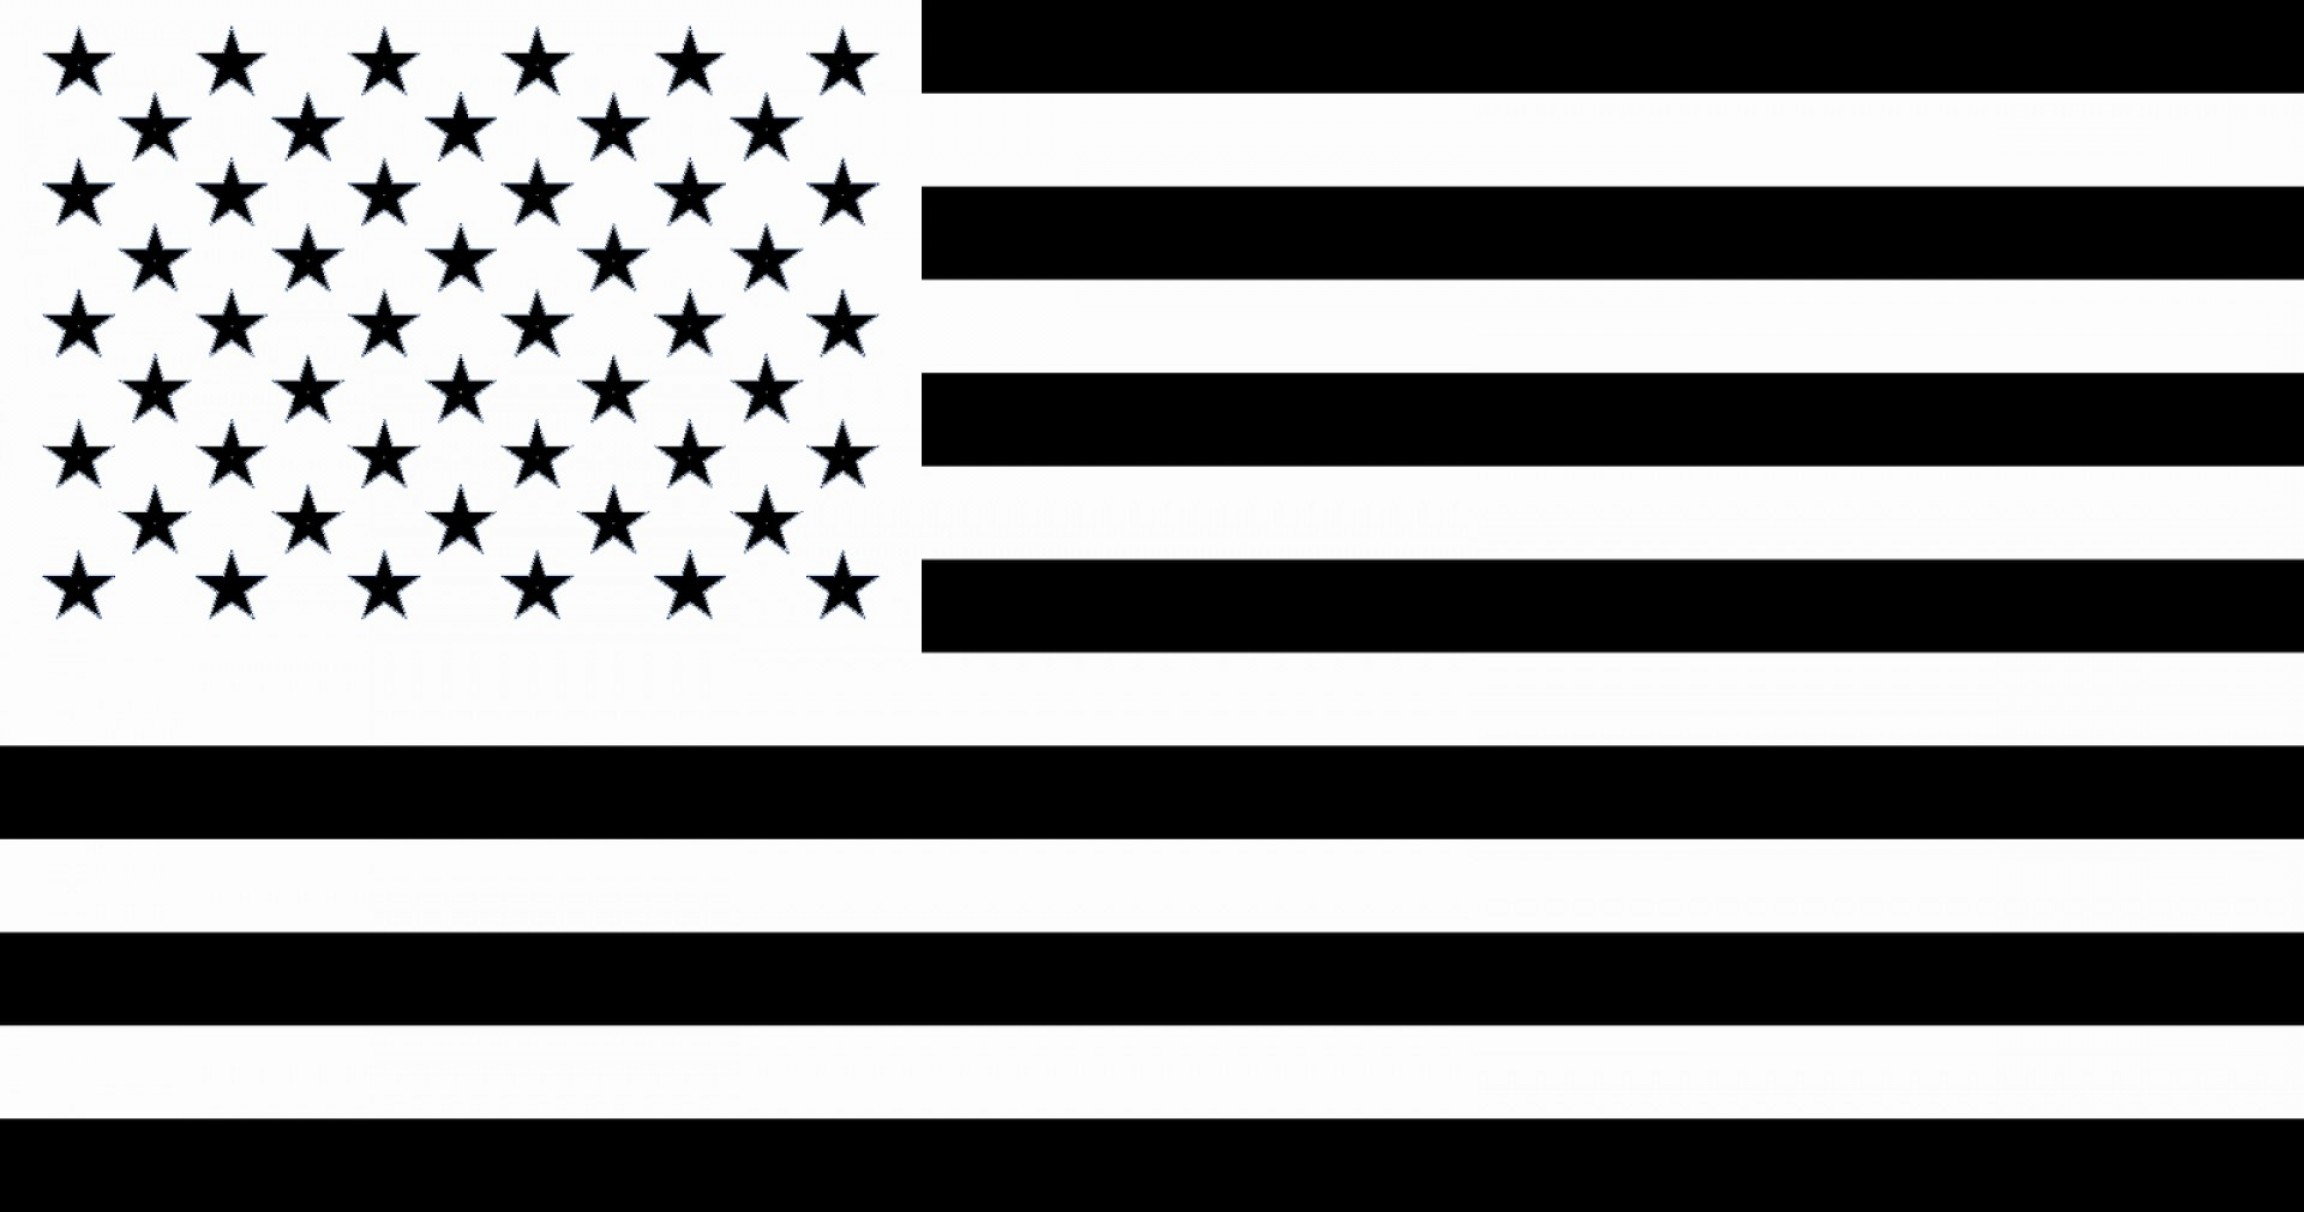 Vertical American Flag Vector: American Flag Vector Awesome American Flag Clip Art Free Download Clip Art Free Clip Art